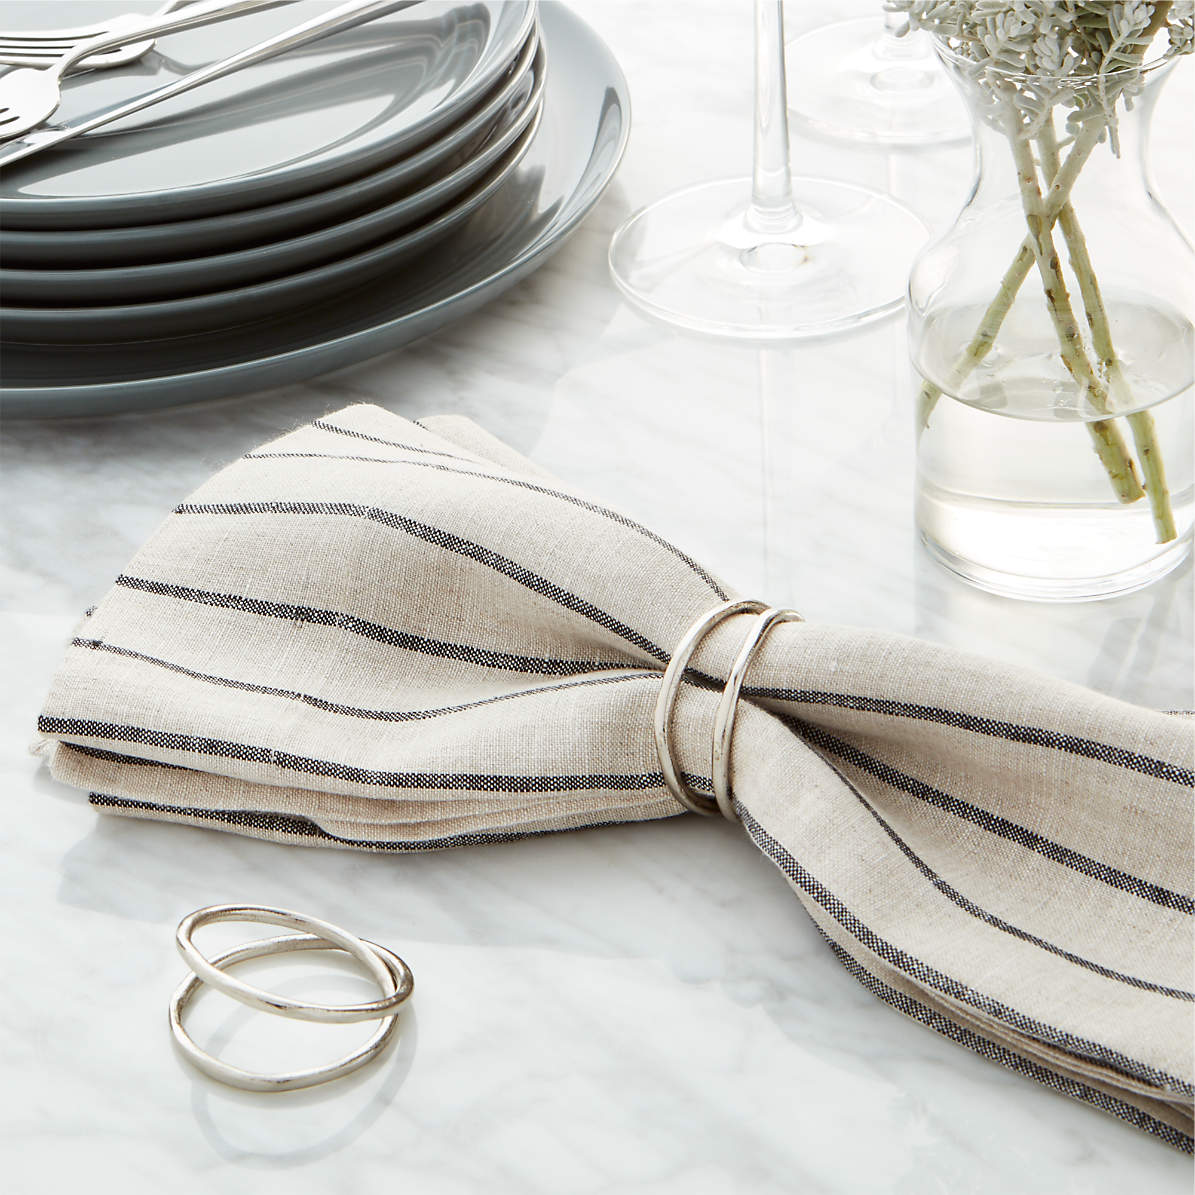 Aria Silver Napkin Ring Reviews Crate And Barrel